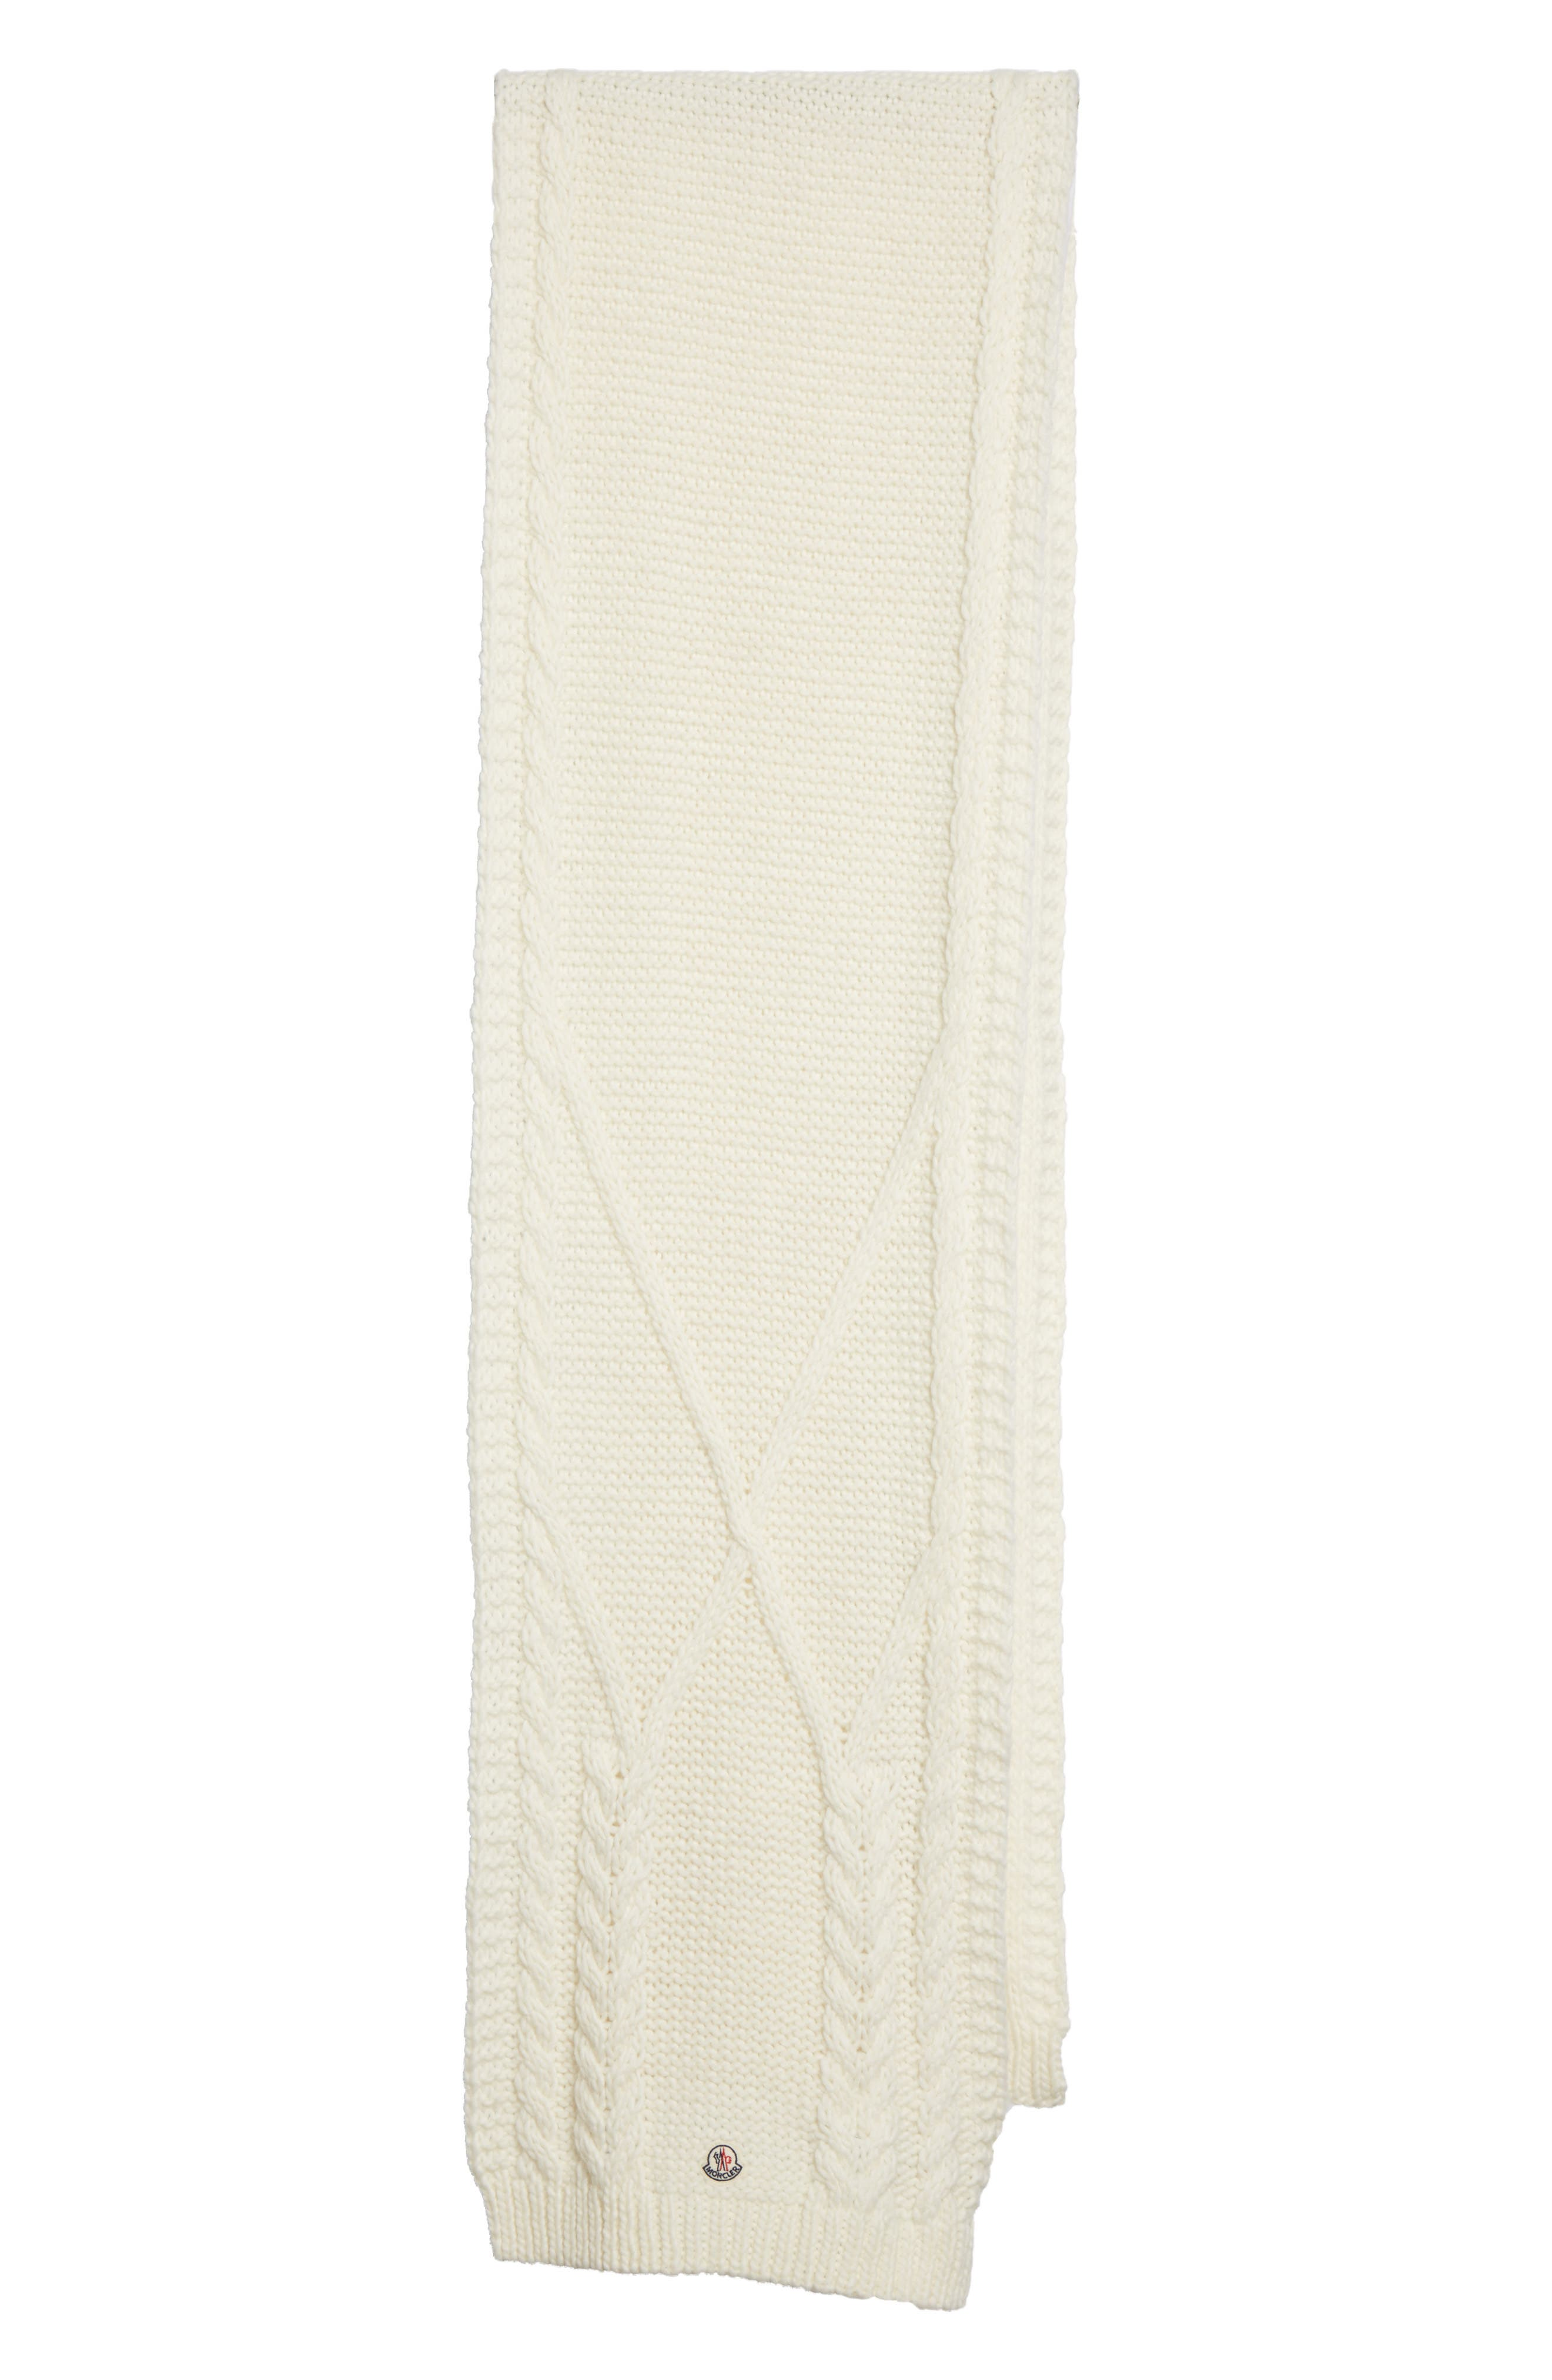 Scarpa Wool Blend Scarf,                         Main,                         color, IVORY